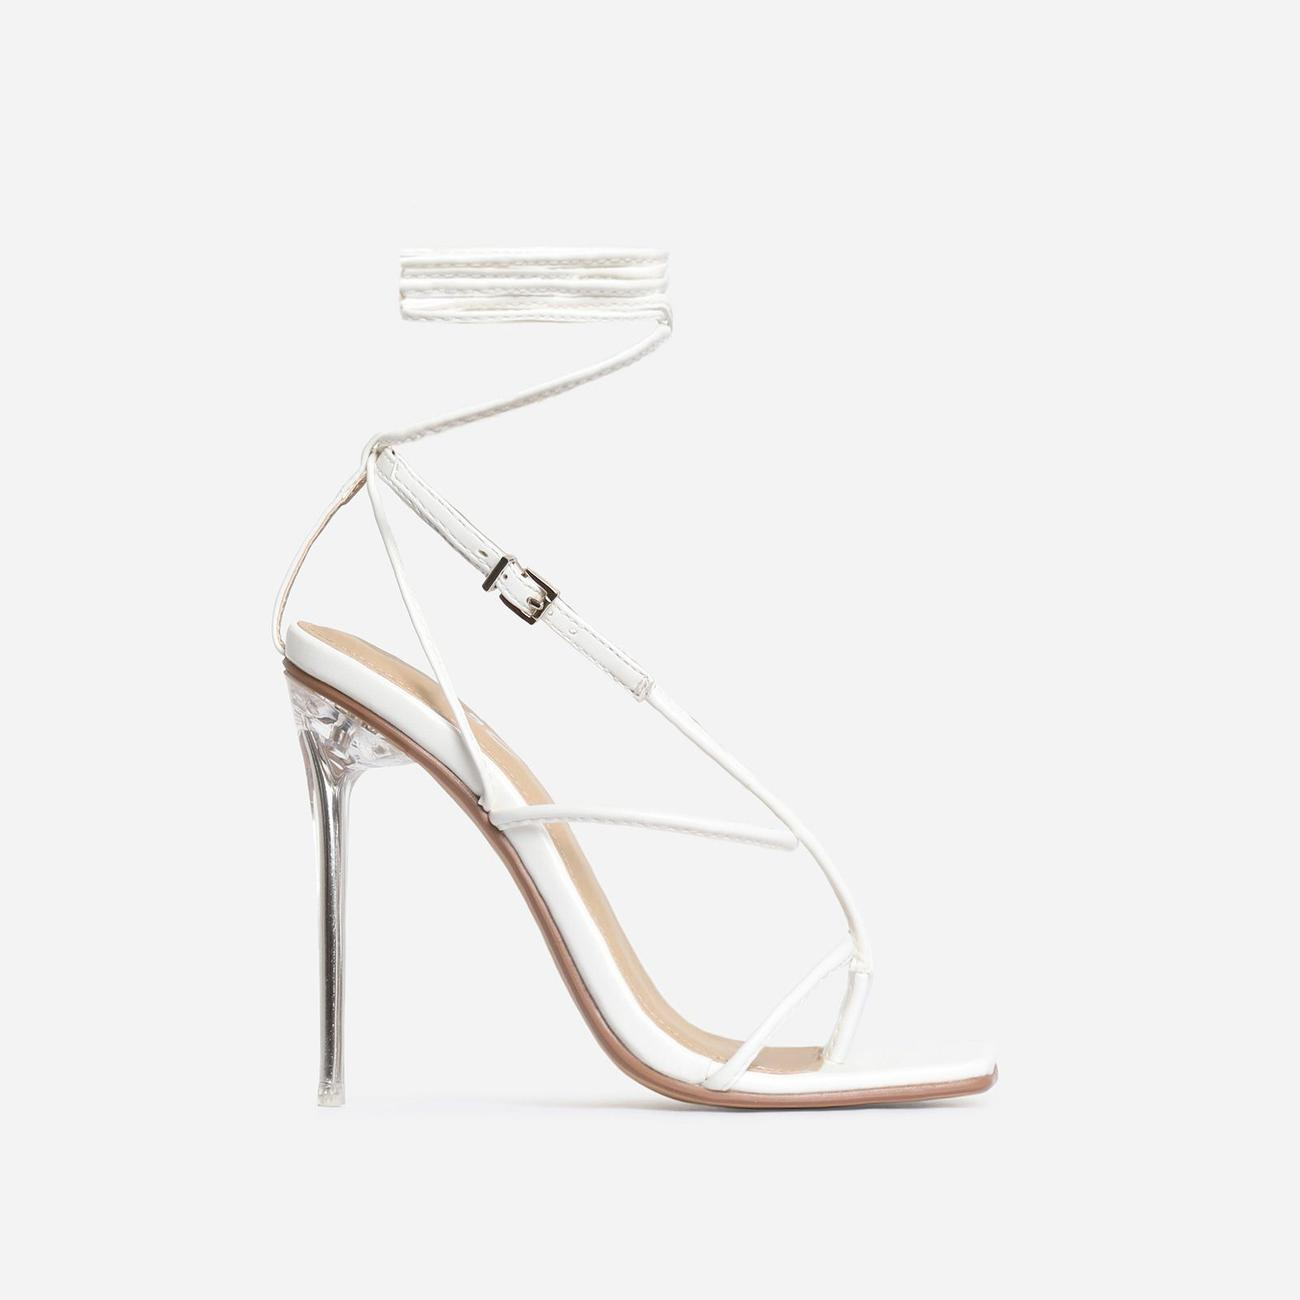 True Square Toe Lace Up Clear Perspex Heel In White Faux Leather Image 2